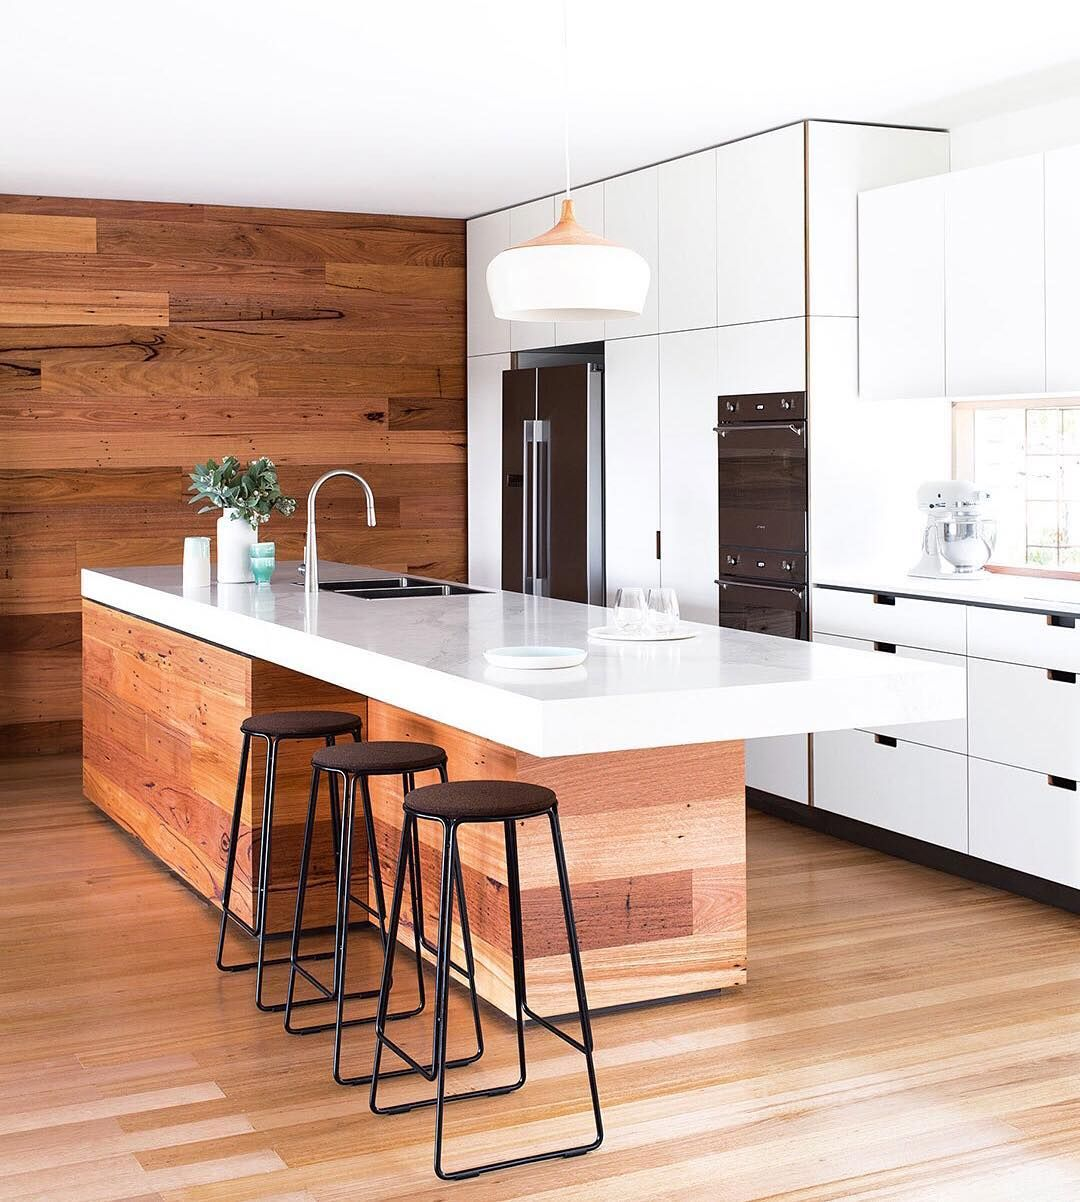 Kitchen Design Questions: Pin By Andesita Oki On Interior : Kitchen & Dining